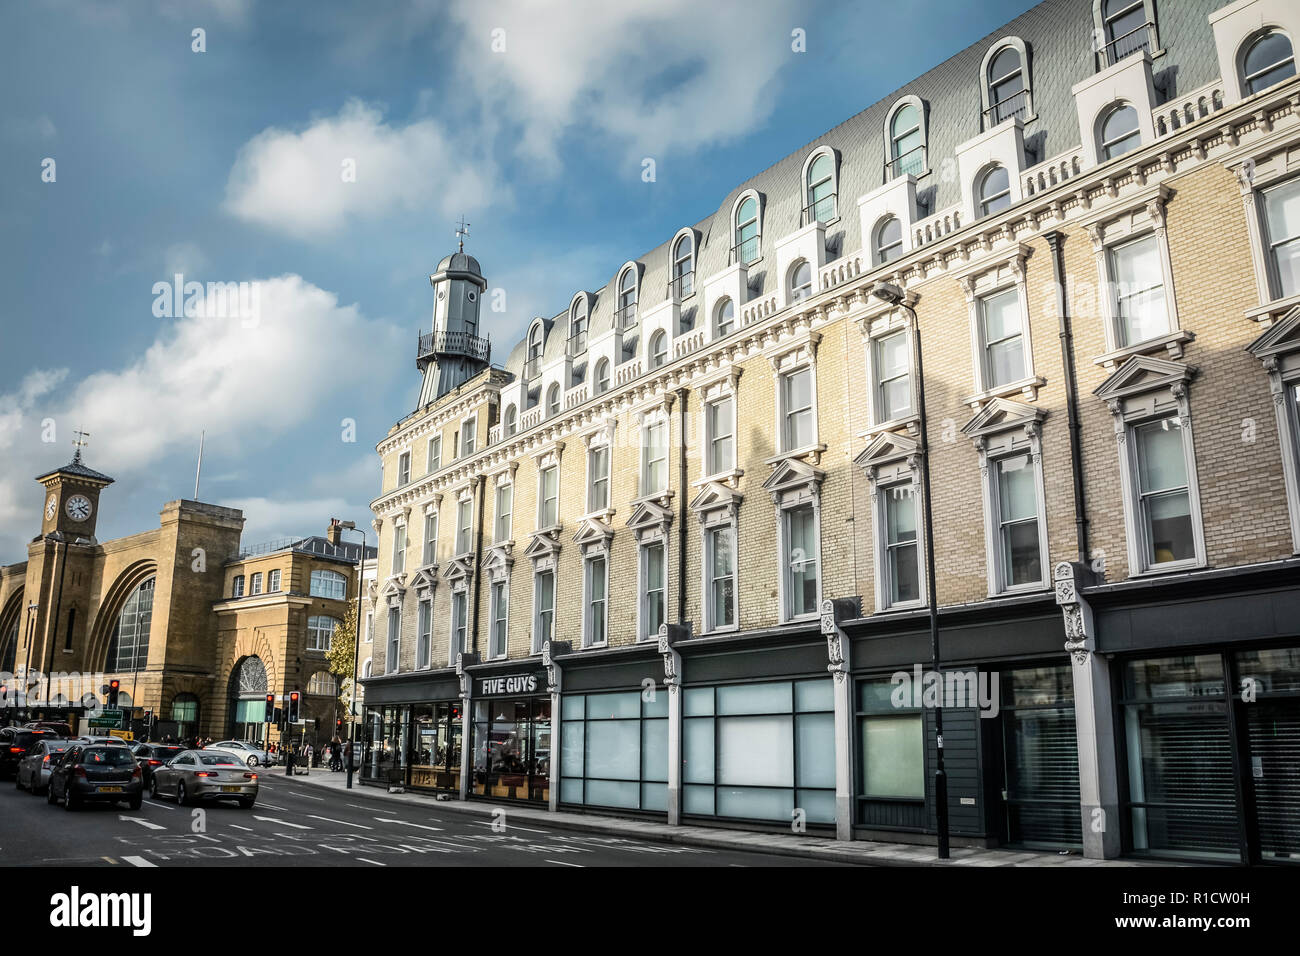 King's Cross station and the The Oysterhouse Lighthouse, Gray's Inn Road, Kings Cross, London, UK Stock Photo